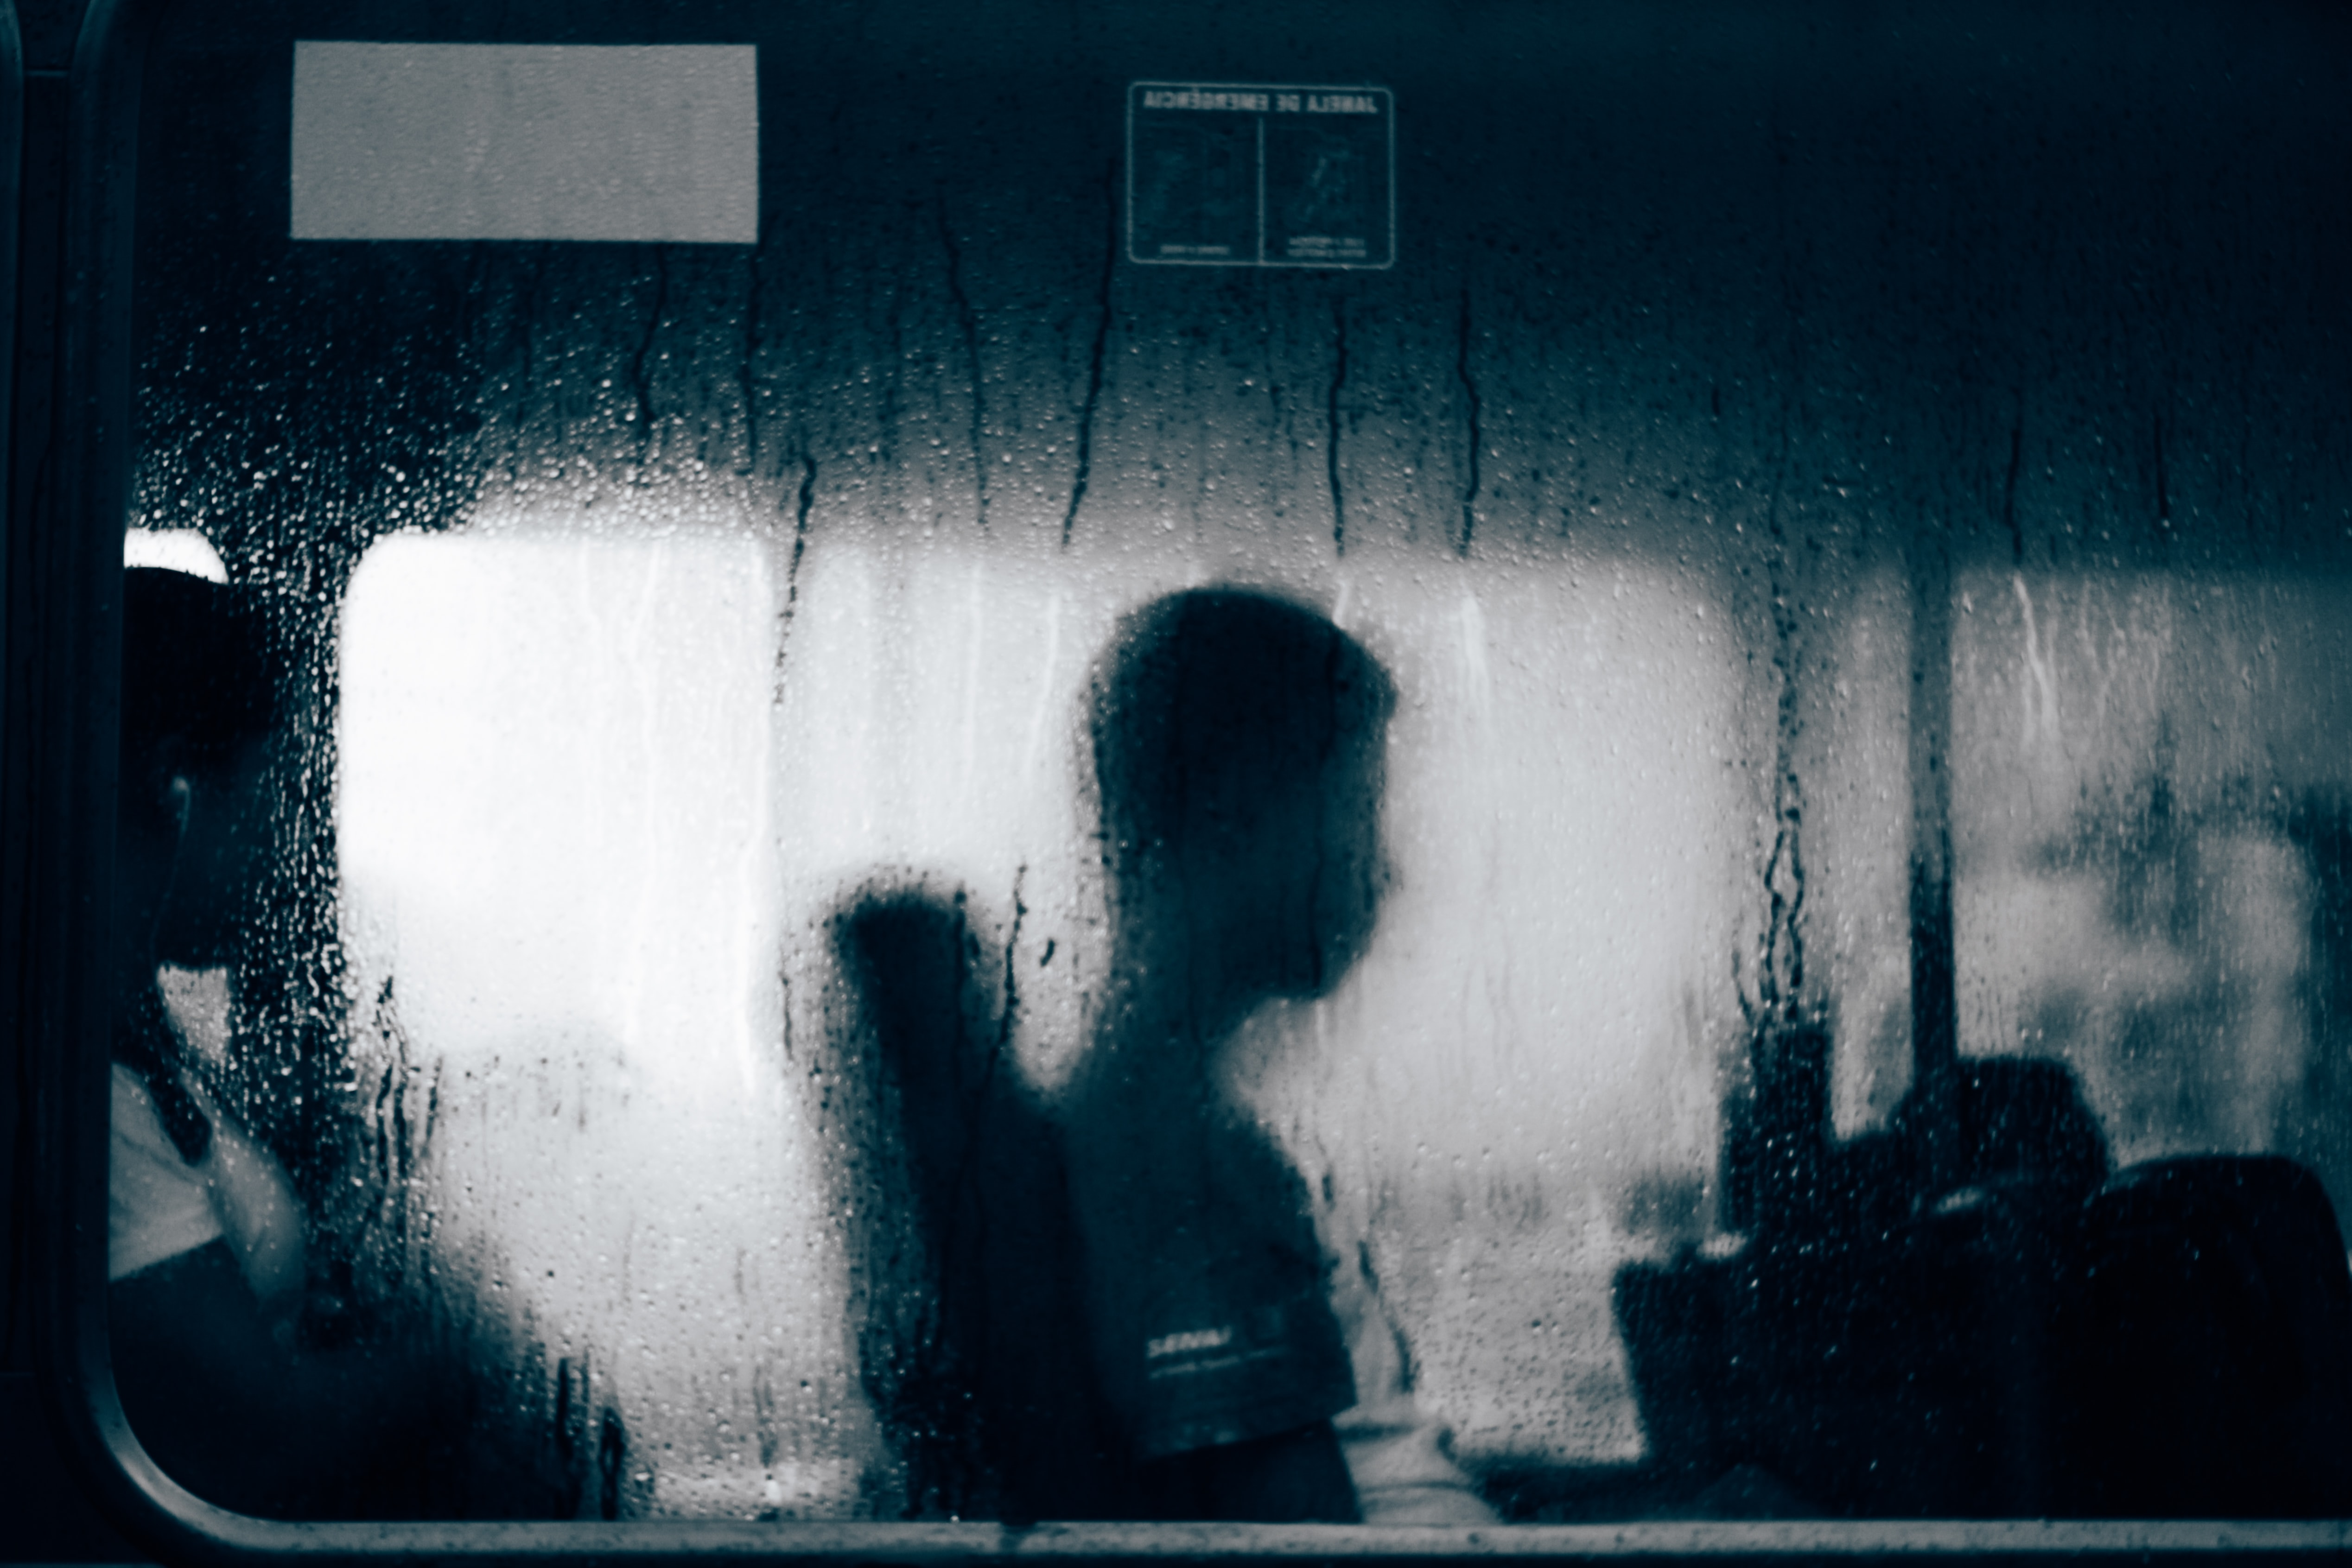 Profile silhouette of person sitting near window with rain water on it